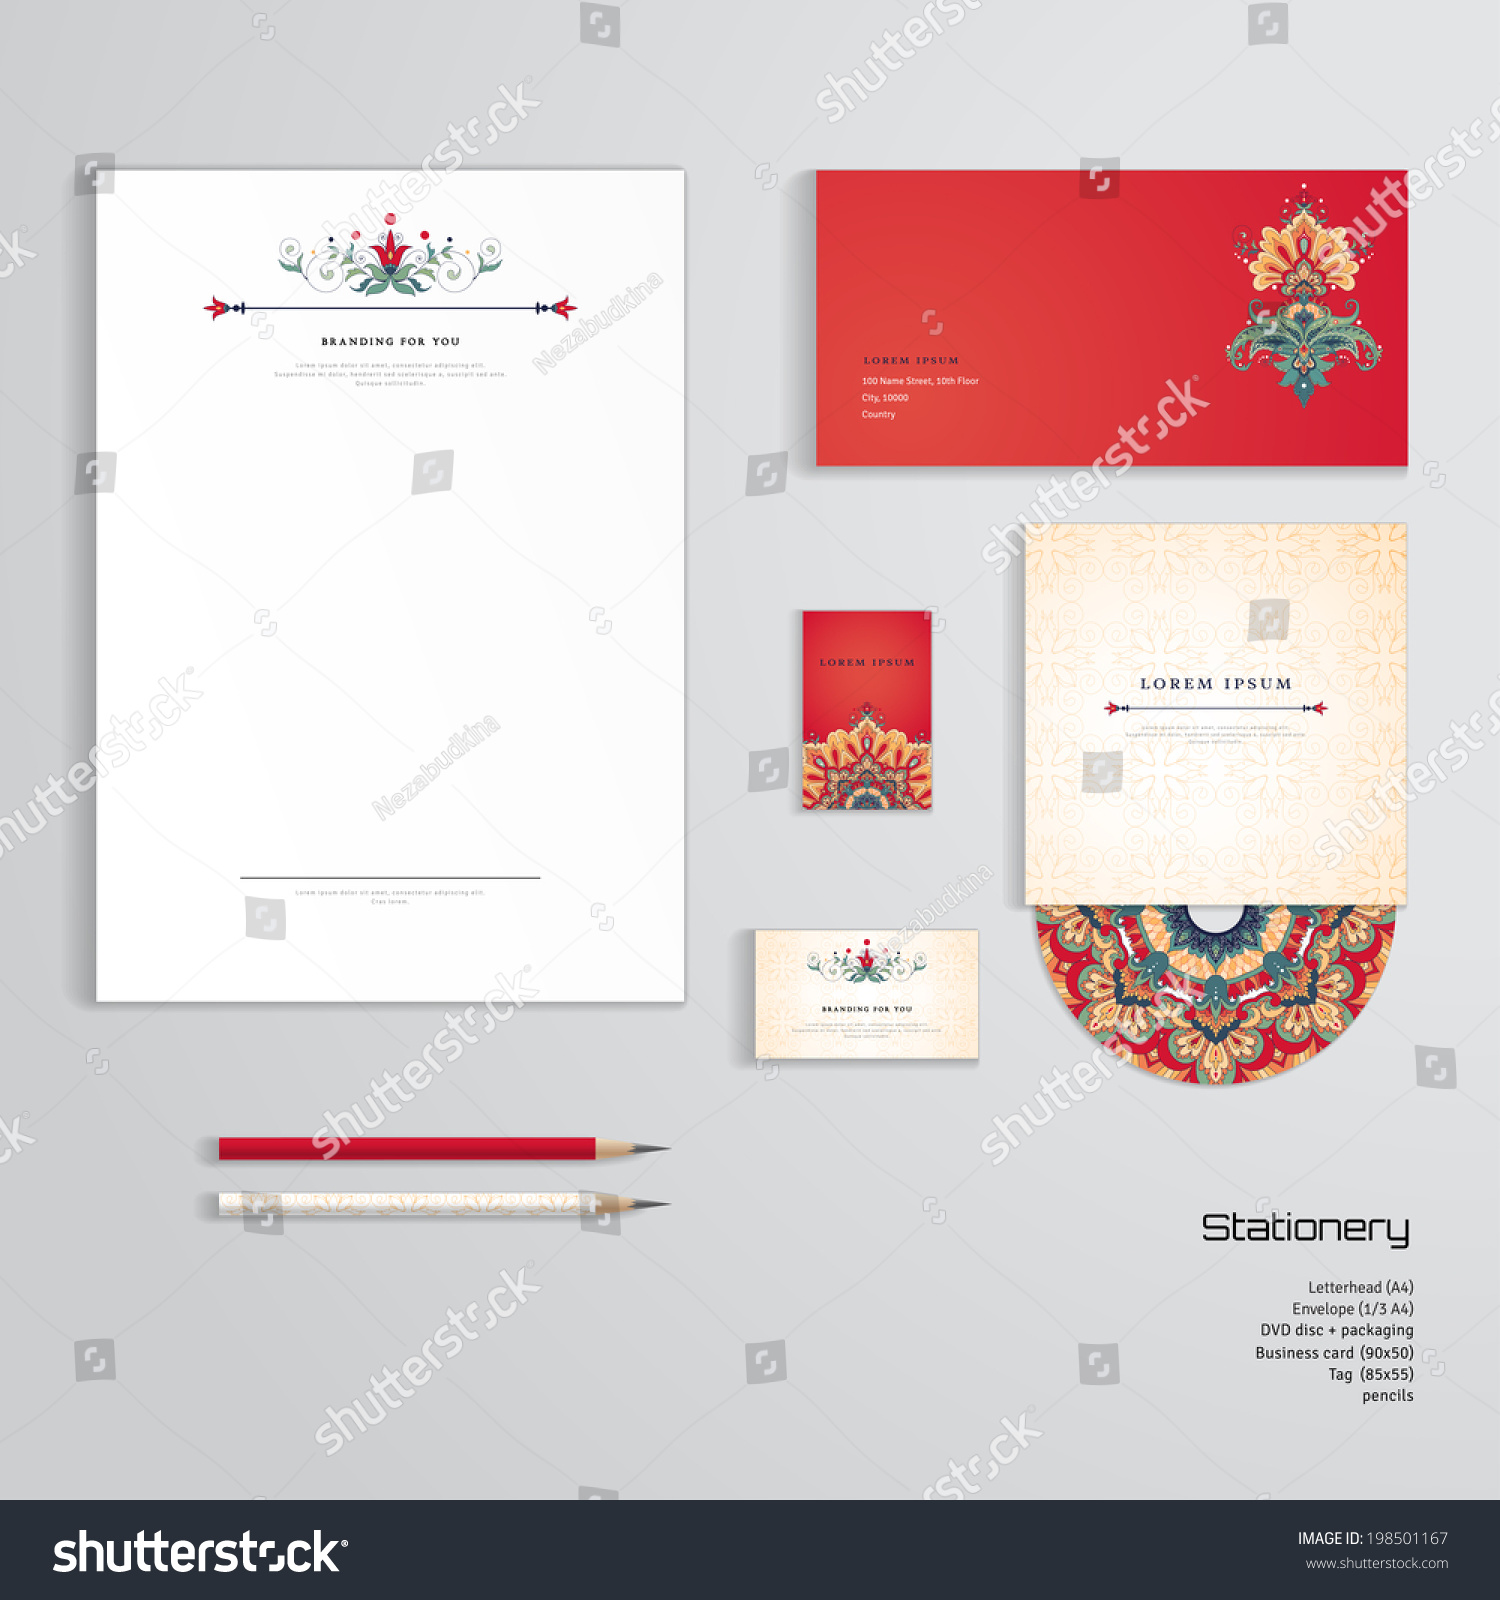 Vector identity templates letterhead envelope business stock vector vector identity templates letterhead envelope business card tag disc with packaging flashek Image collections